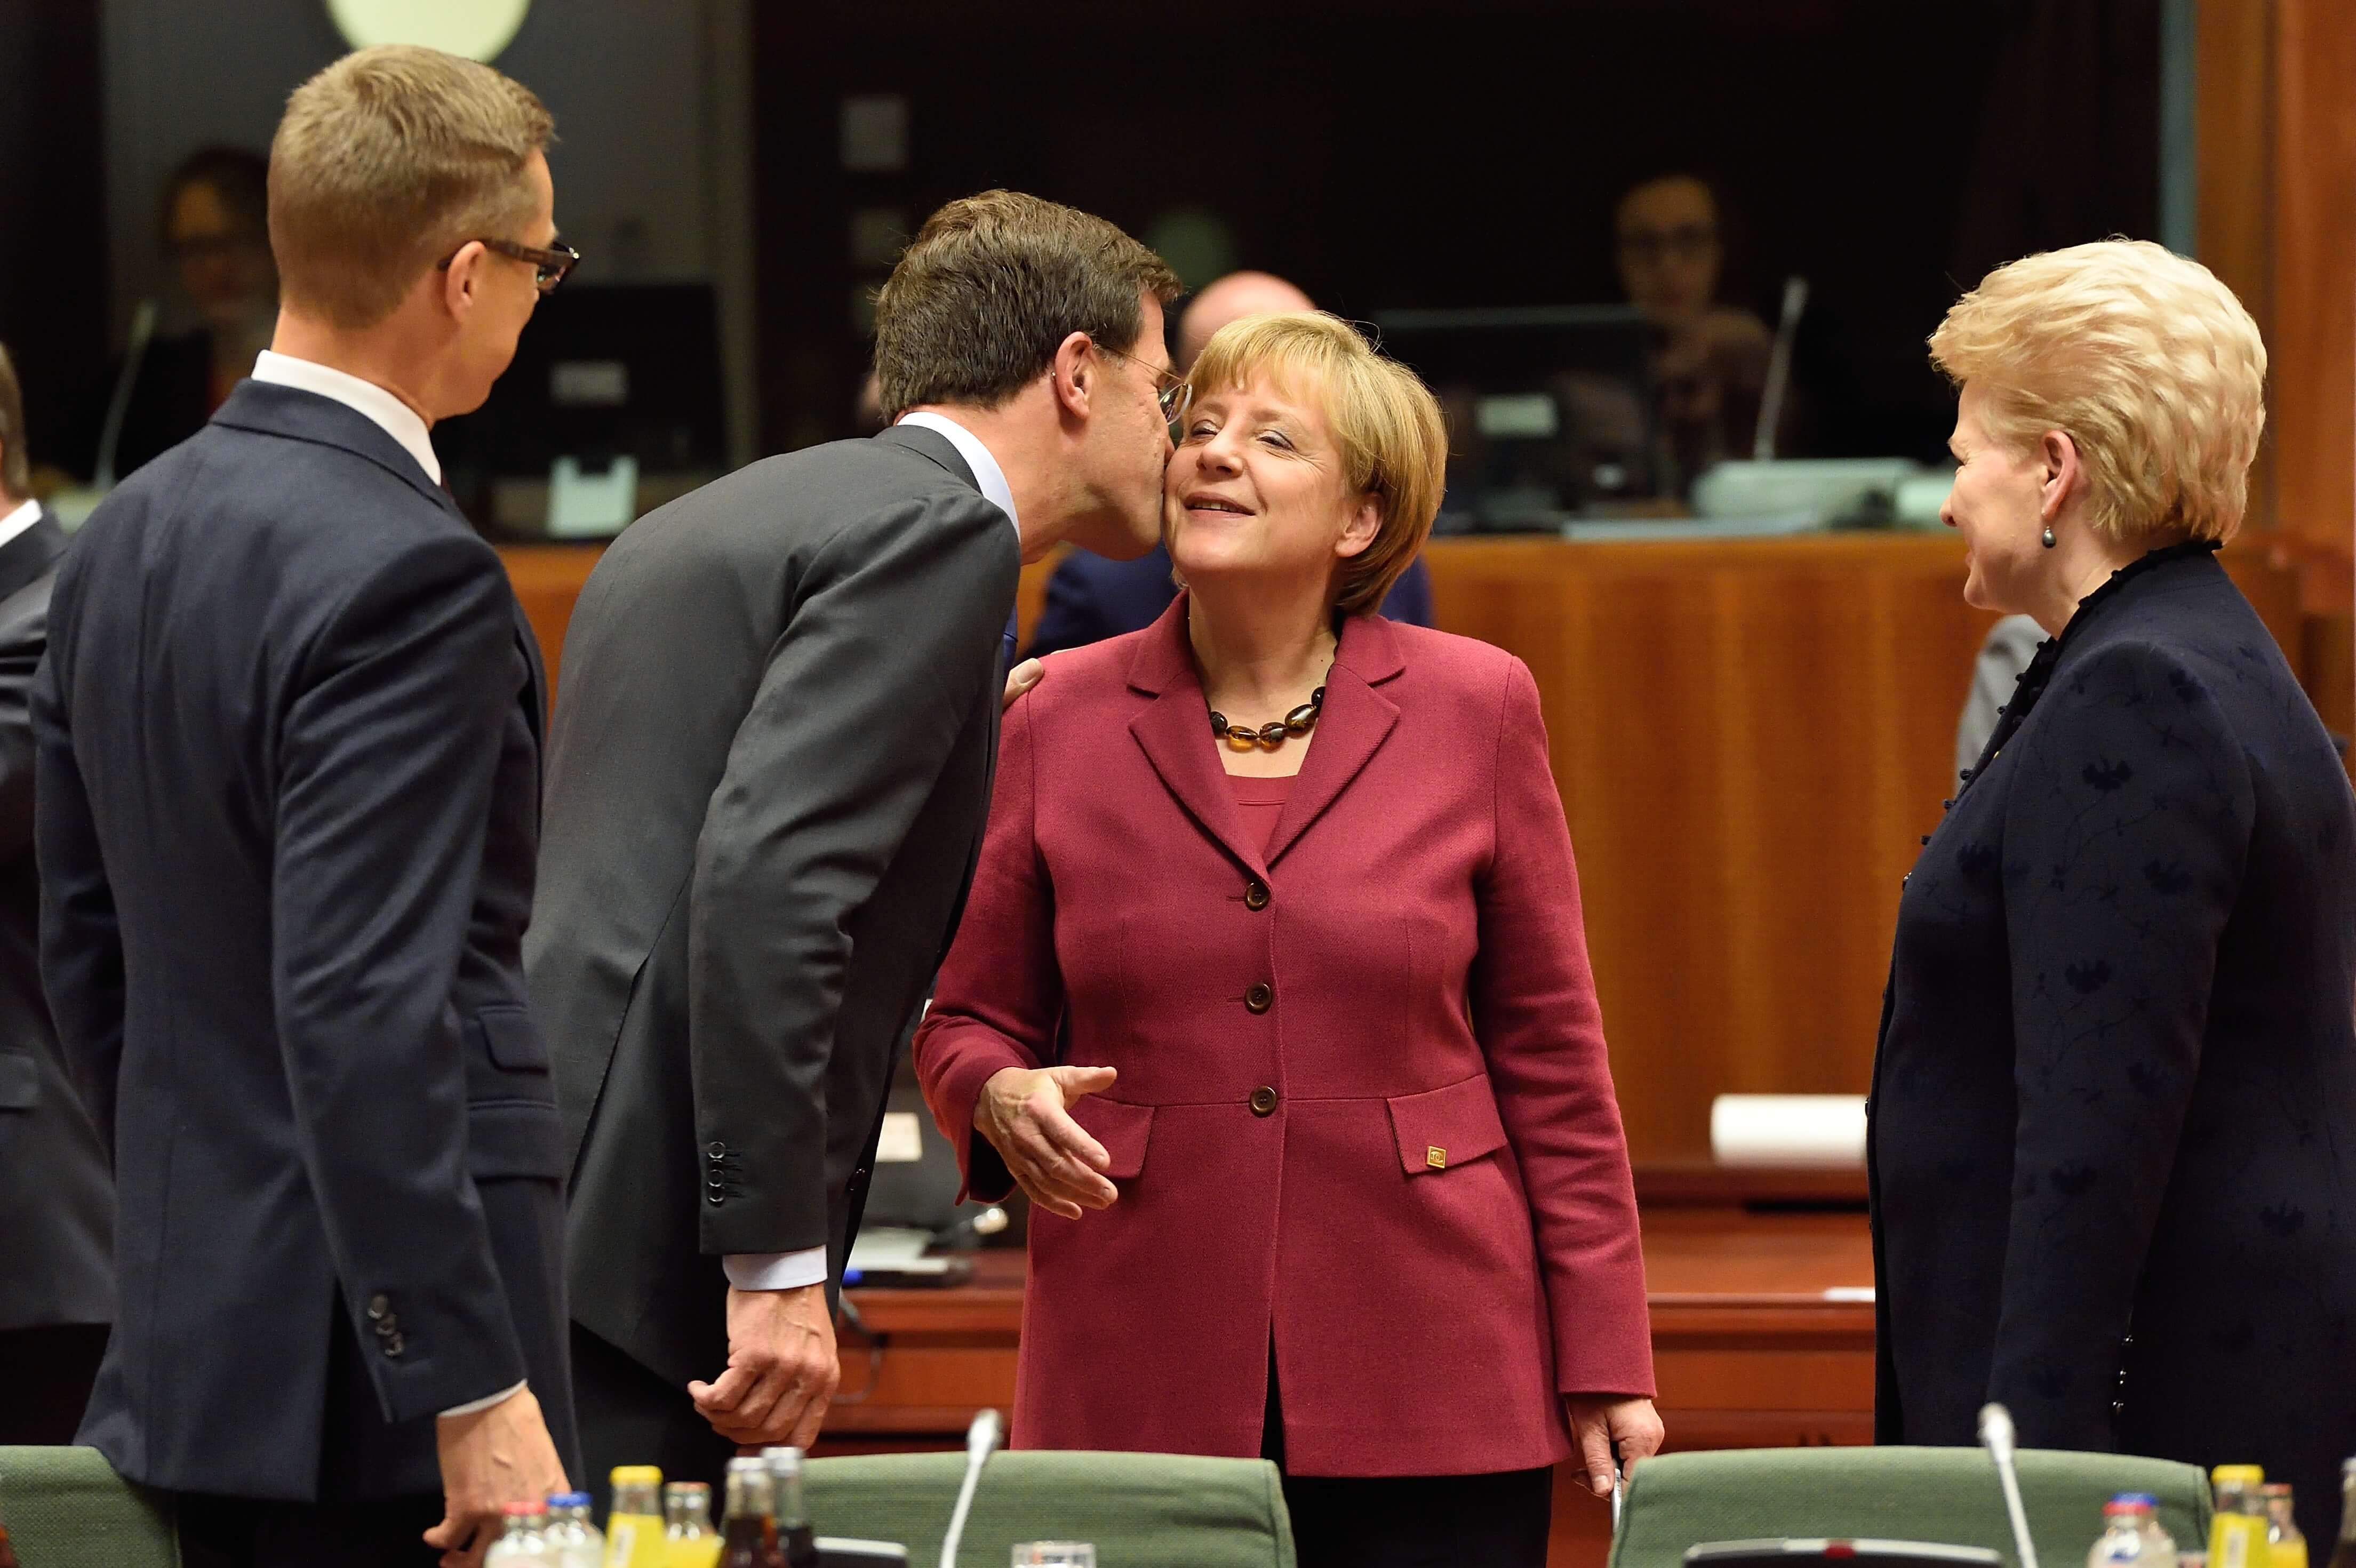 Dutch prime minister Mark Rutte and German Chancellor Angela Merkel